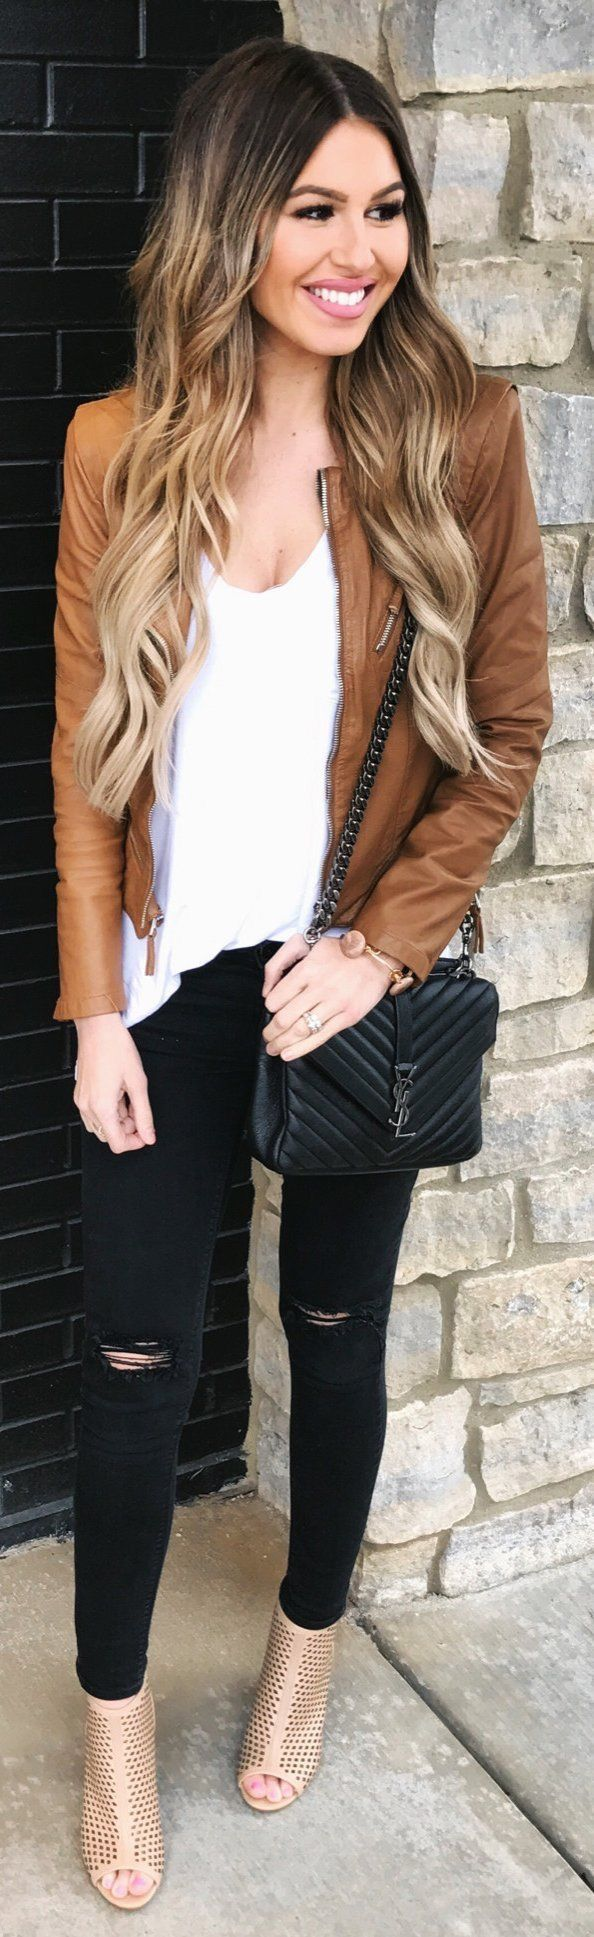 637b69453b Tan leather jacket over white tee and black jeans.